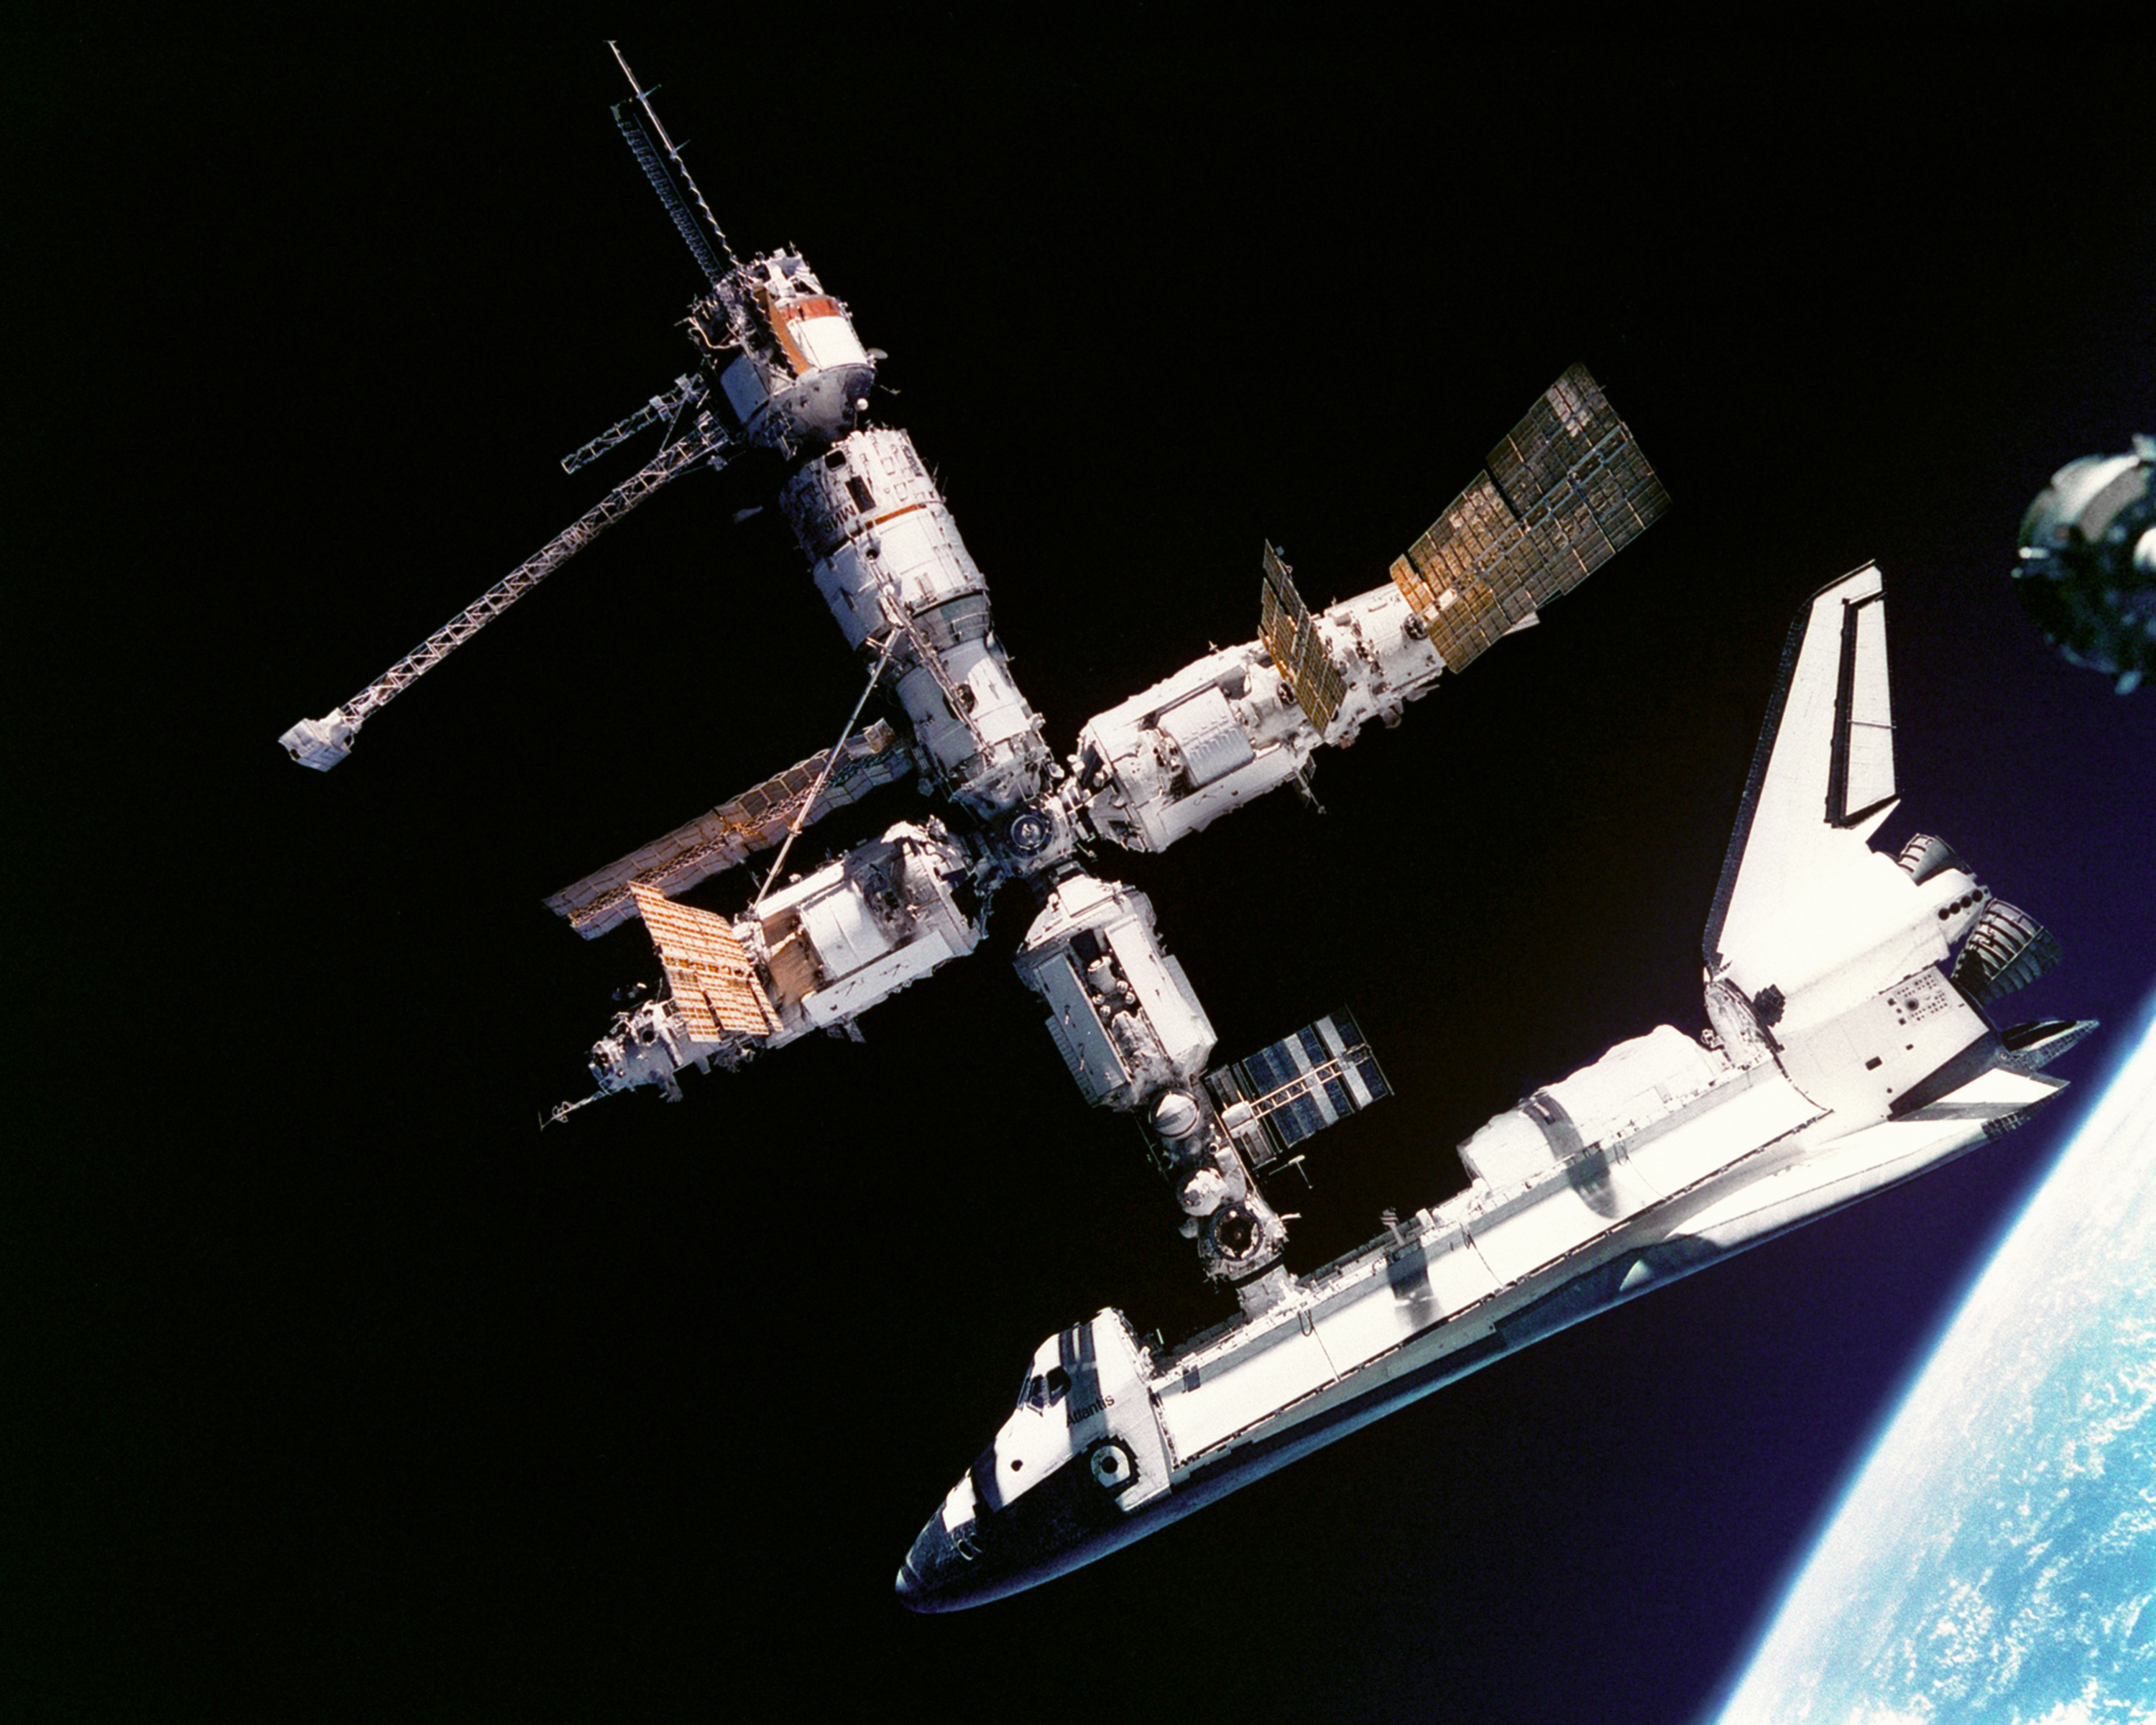 star space station freedom wallpaper - photo #9